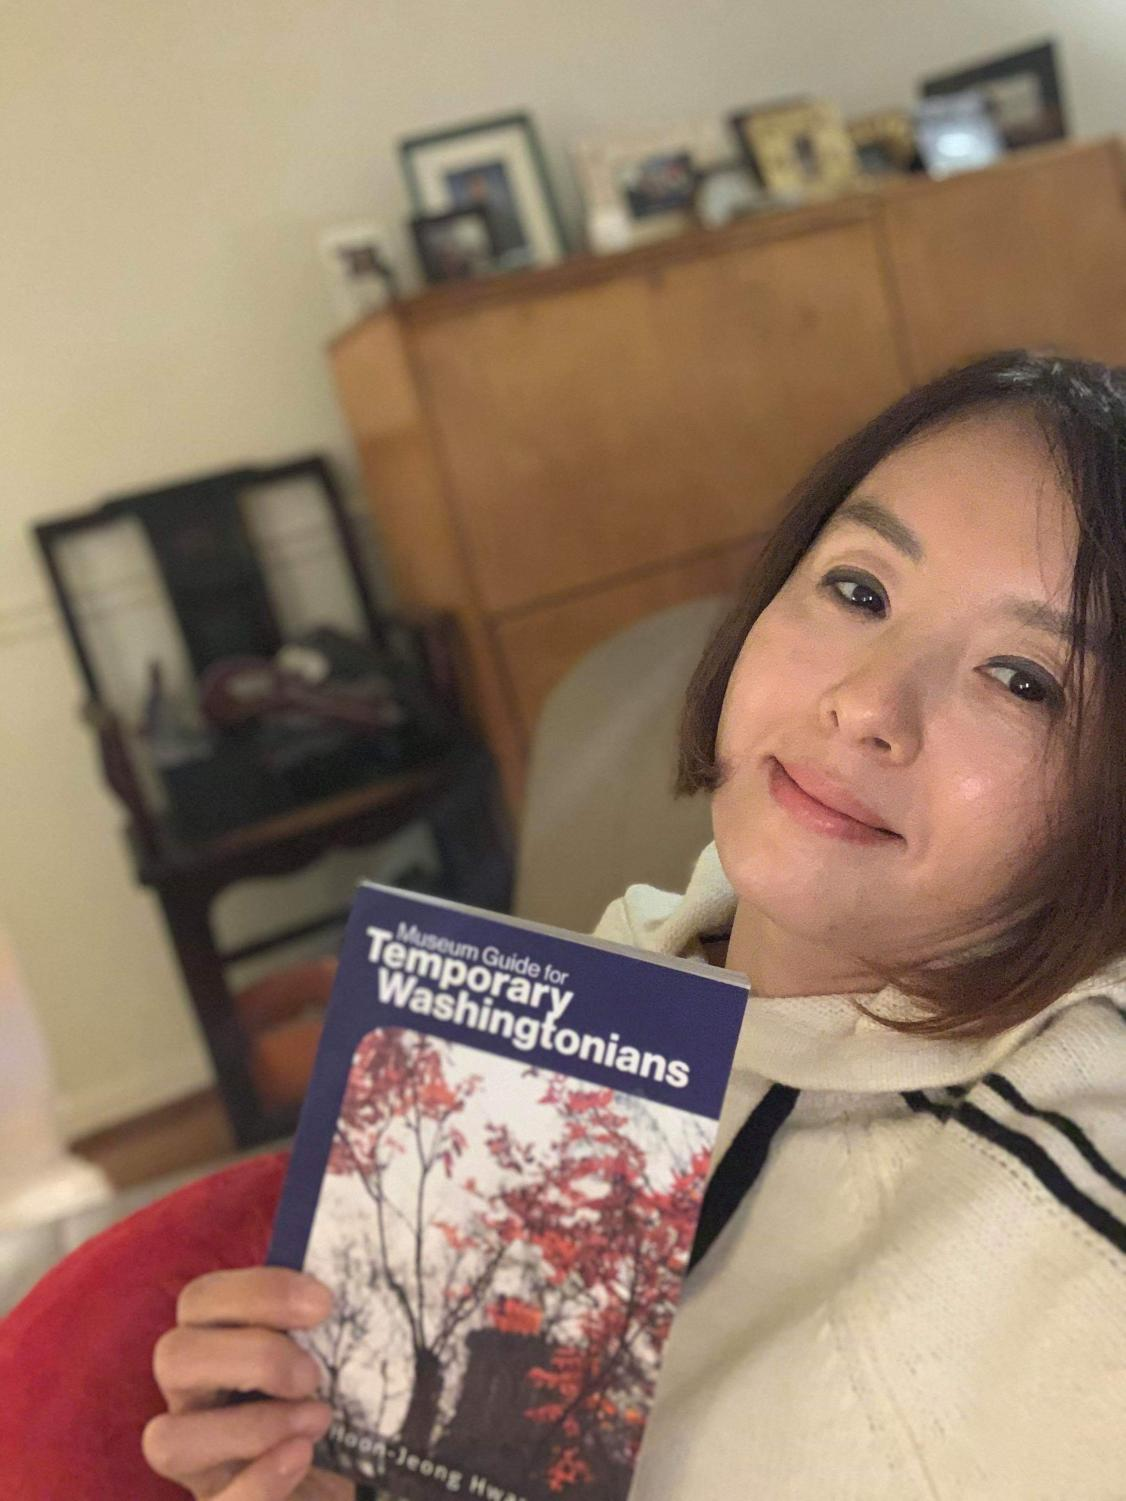 Mrs. Chung poses with her book, Museum Guide for Temporary Washingtonians.